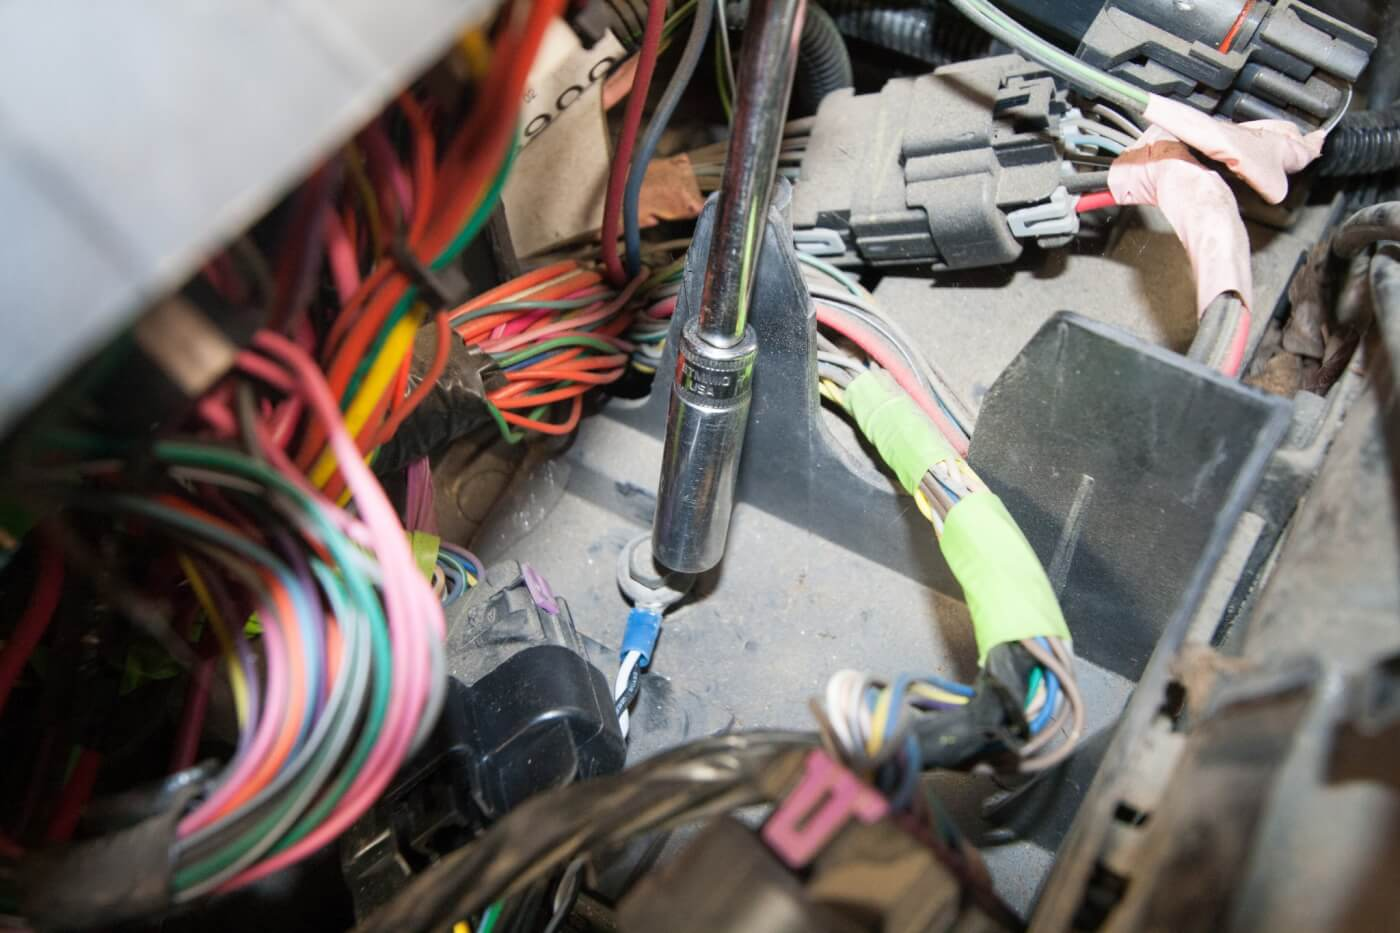 DW 1601 GMBANKS 09 speedbrake installation on a duramax 1974 Chevy Truck Fuse Box Diagram at webbmarketing.co